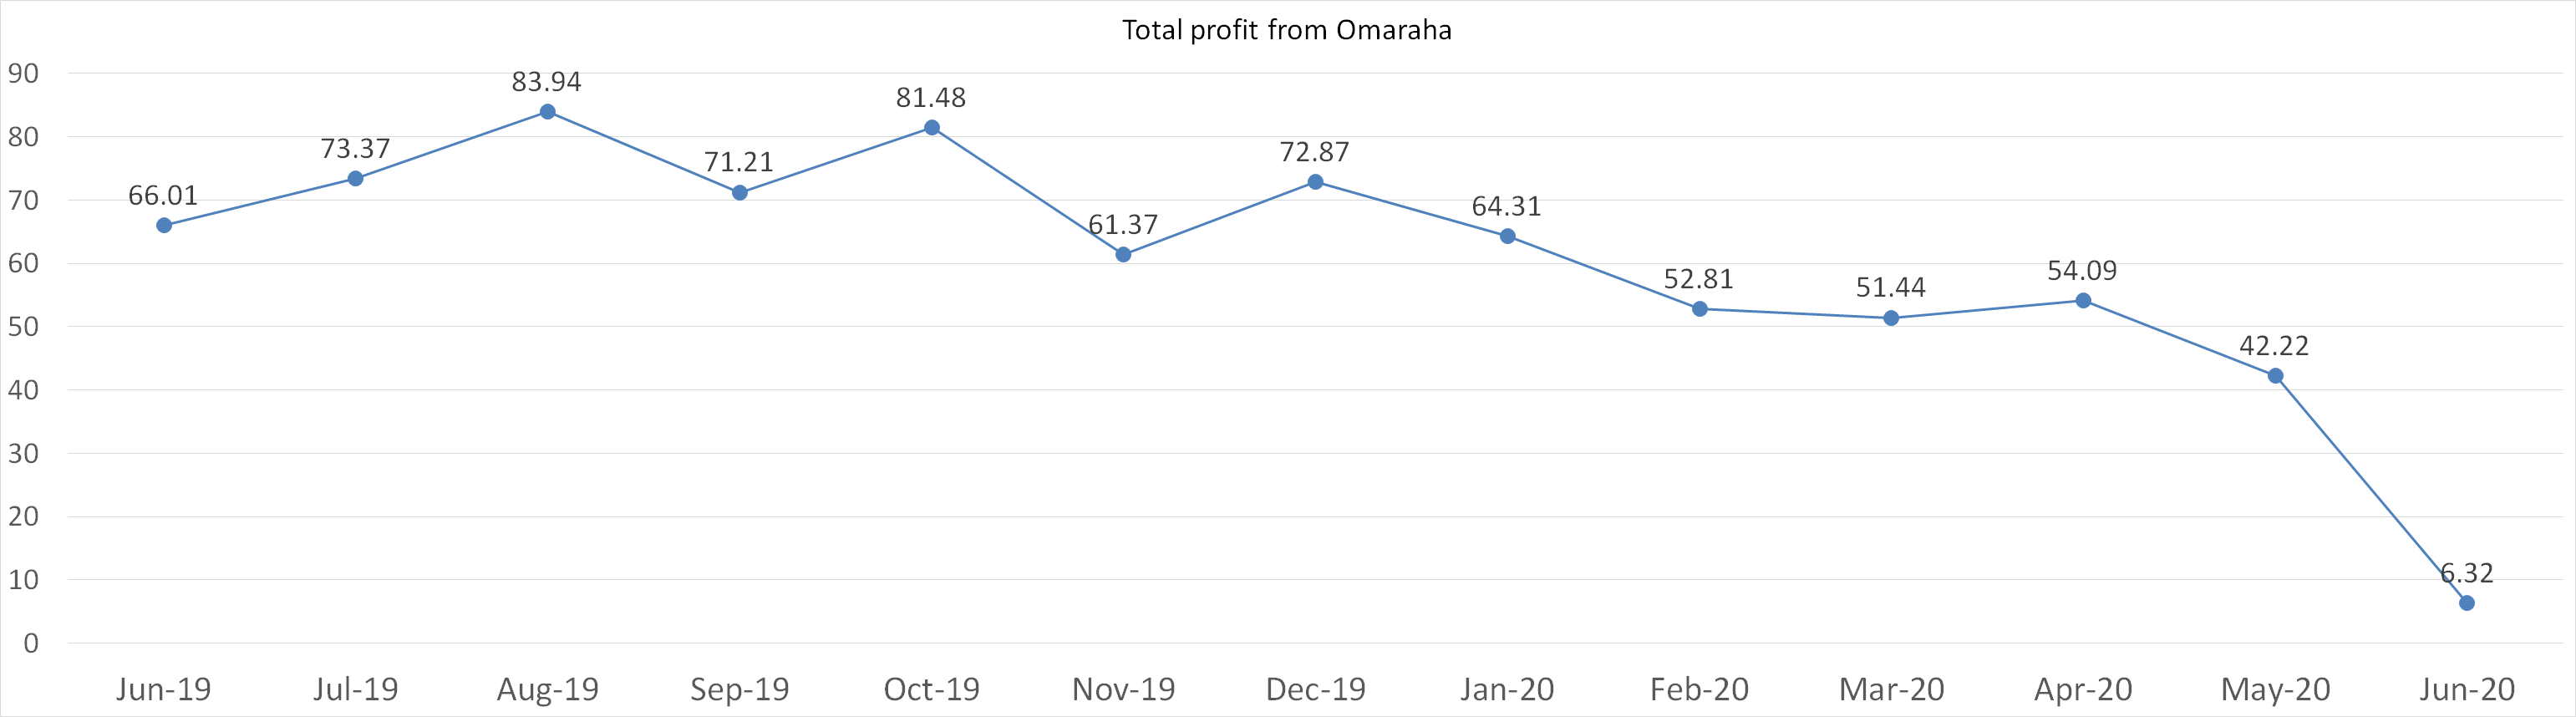 Total profit from Omaraha june 2020